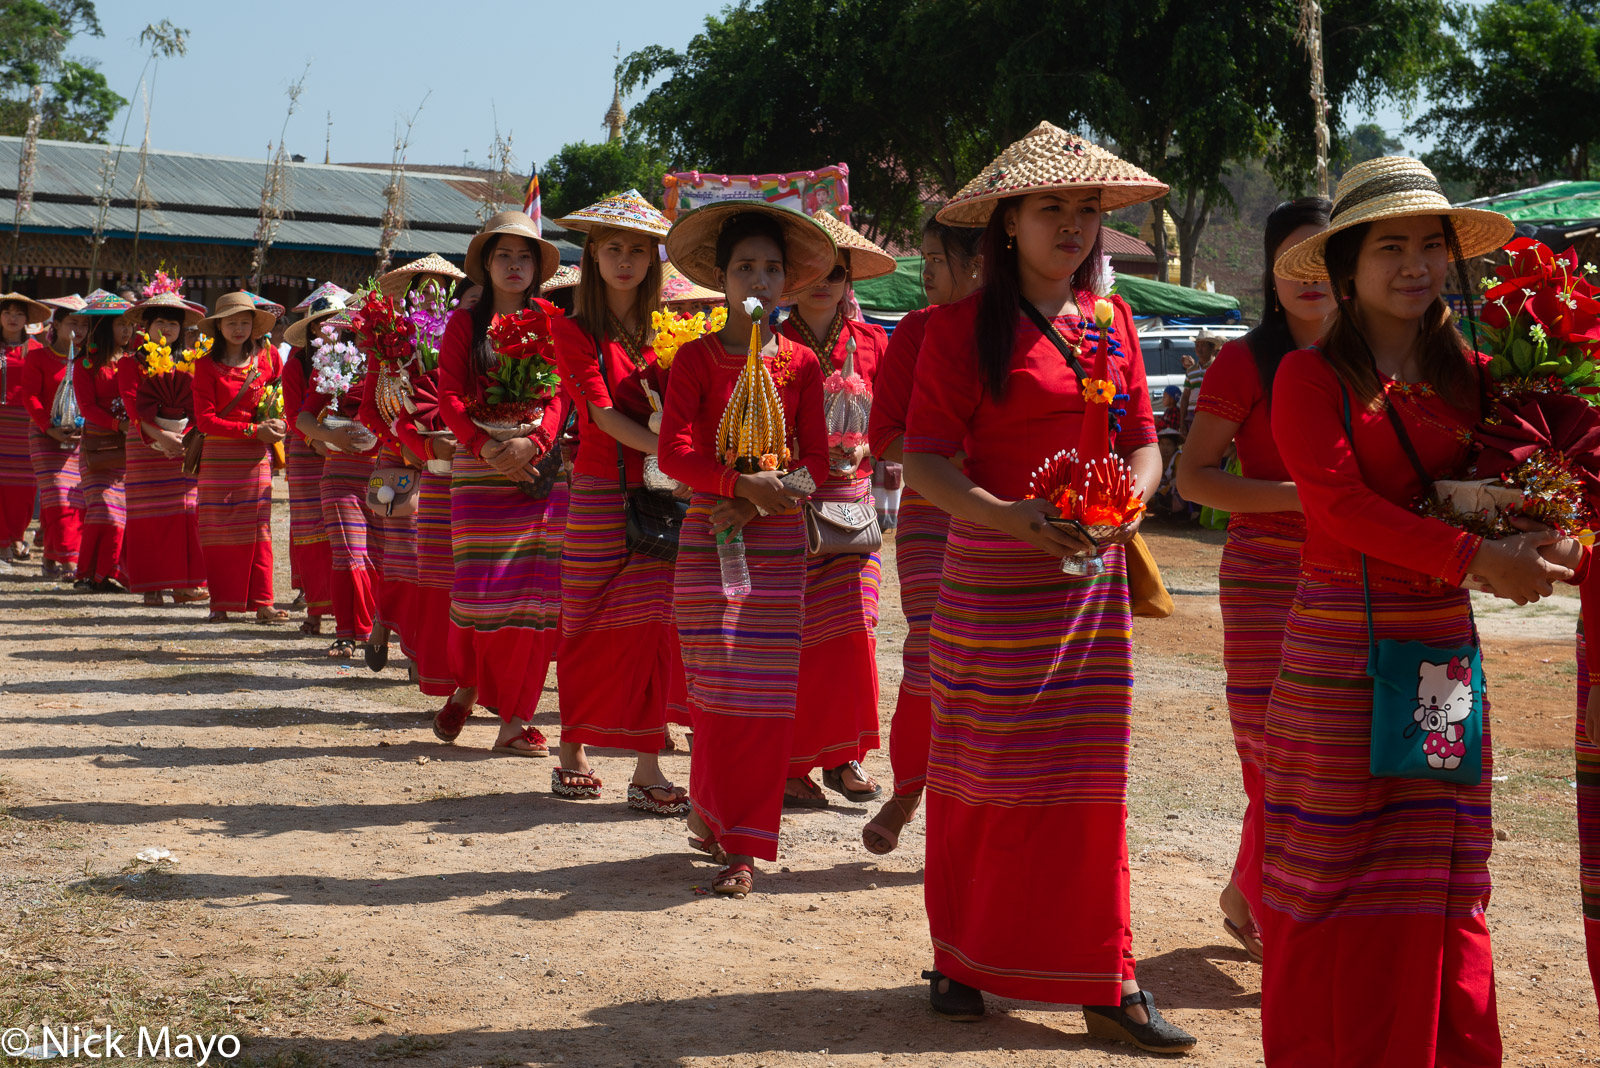 A procession of Shan women during a shinbyu (novitiation ceremony) at Phan Khao.